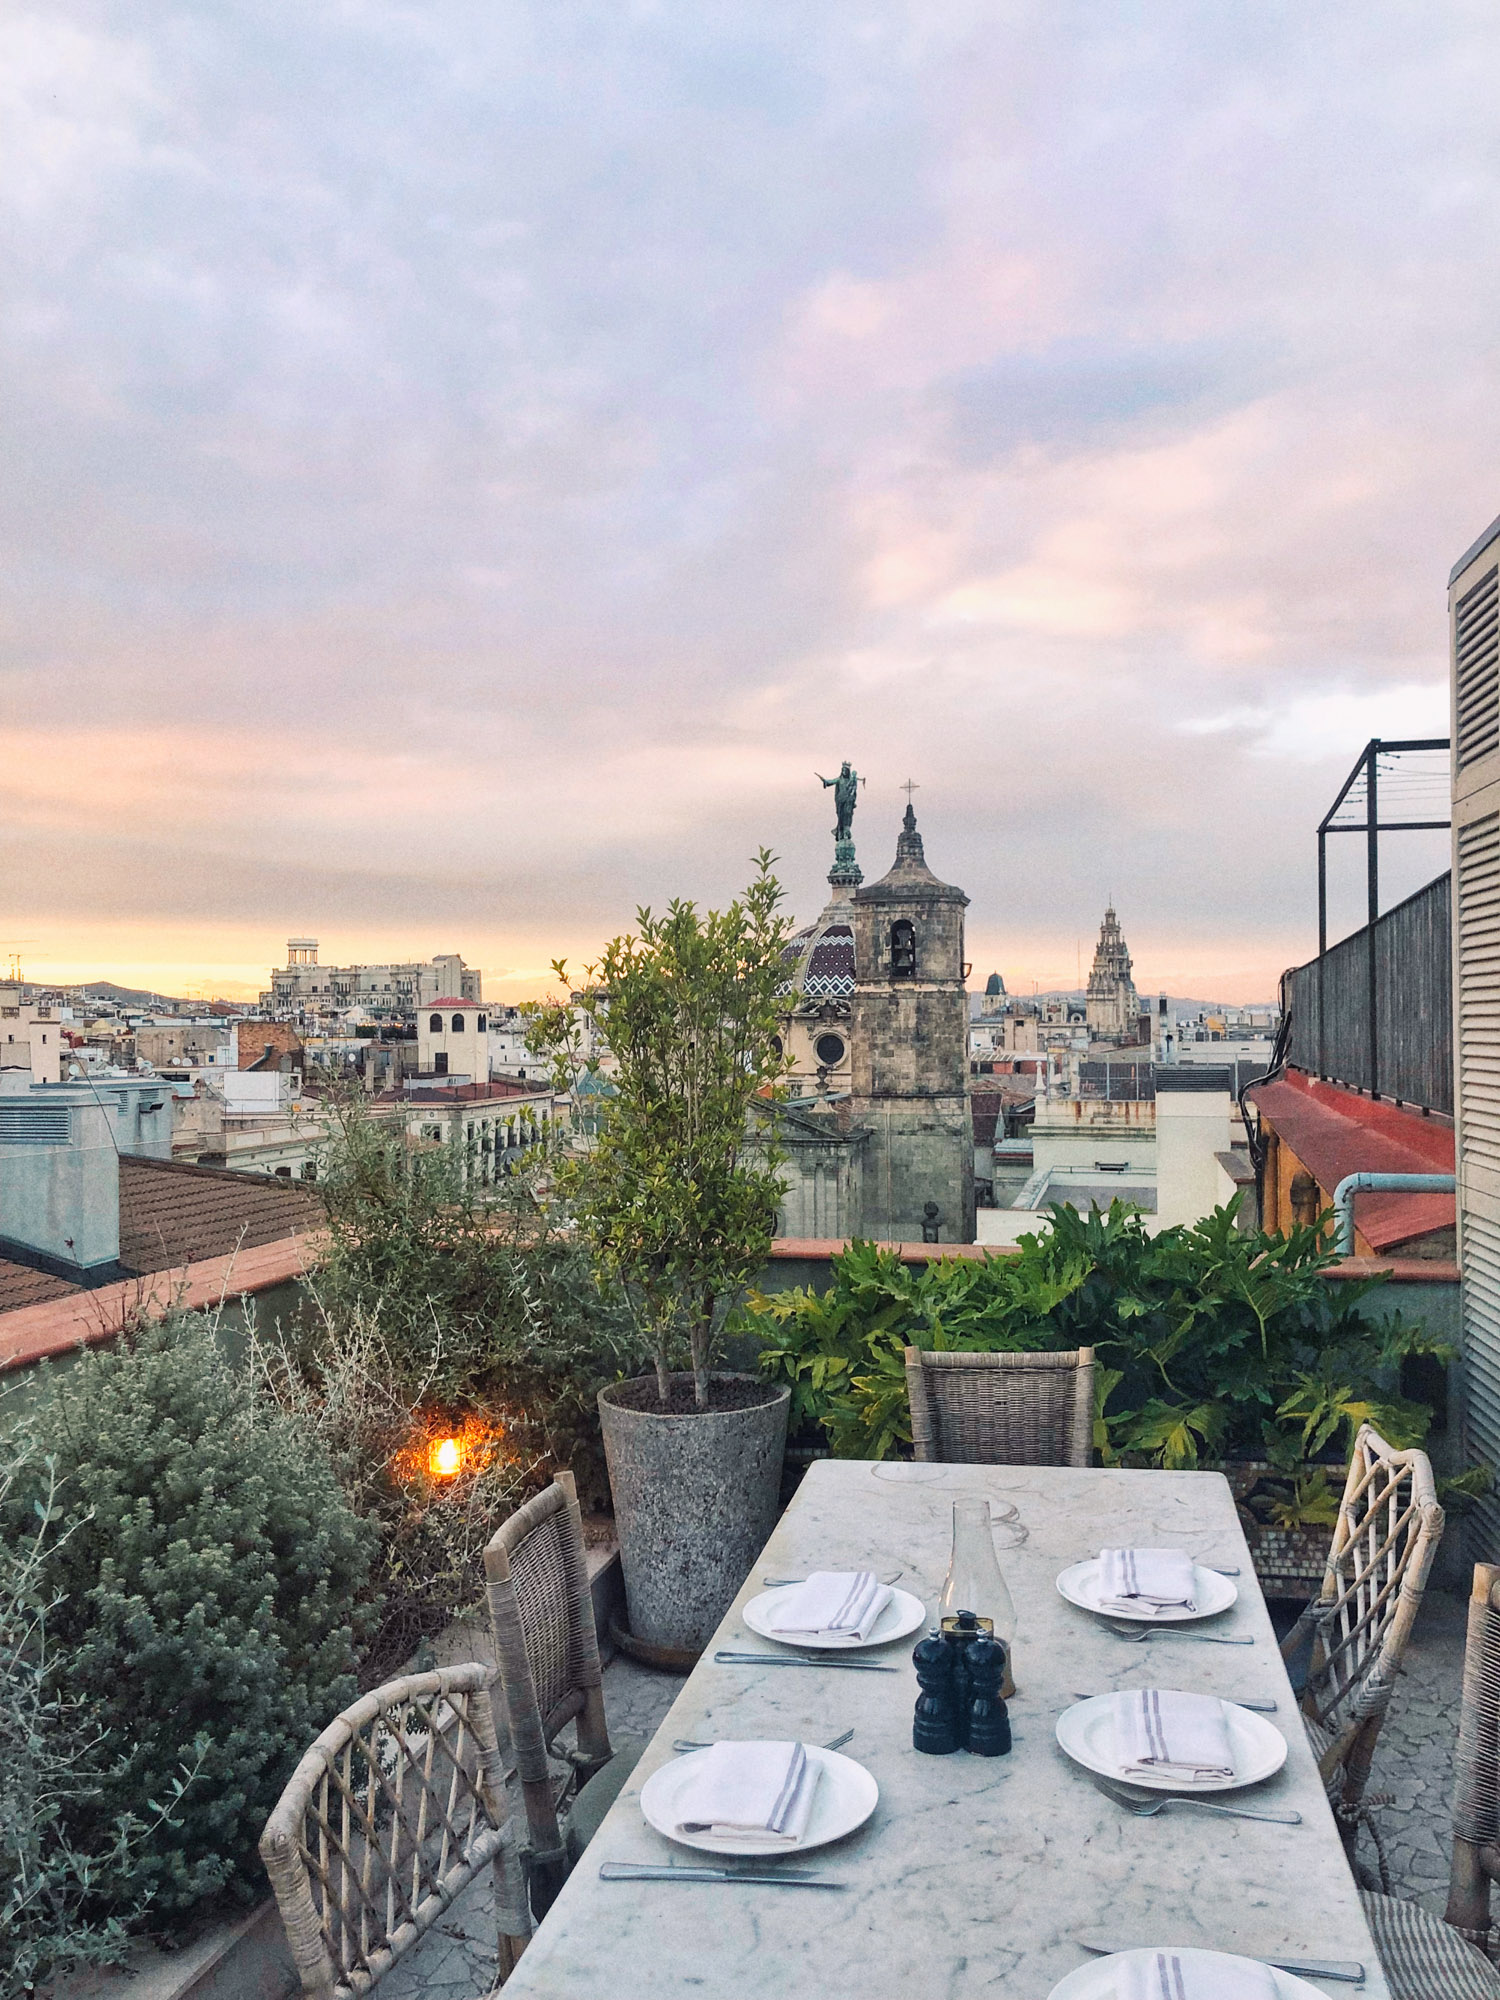 Honeymoon in Europe // Travel Ideas / Wanderlust / Photography / Europe Trip Itinerary / Soho House Barcelona